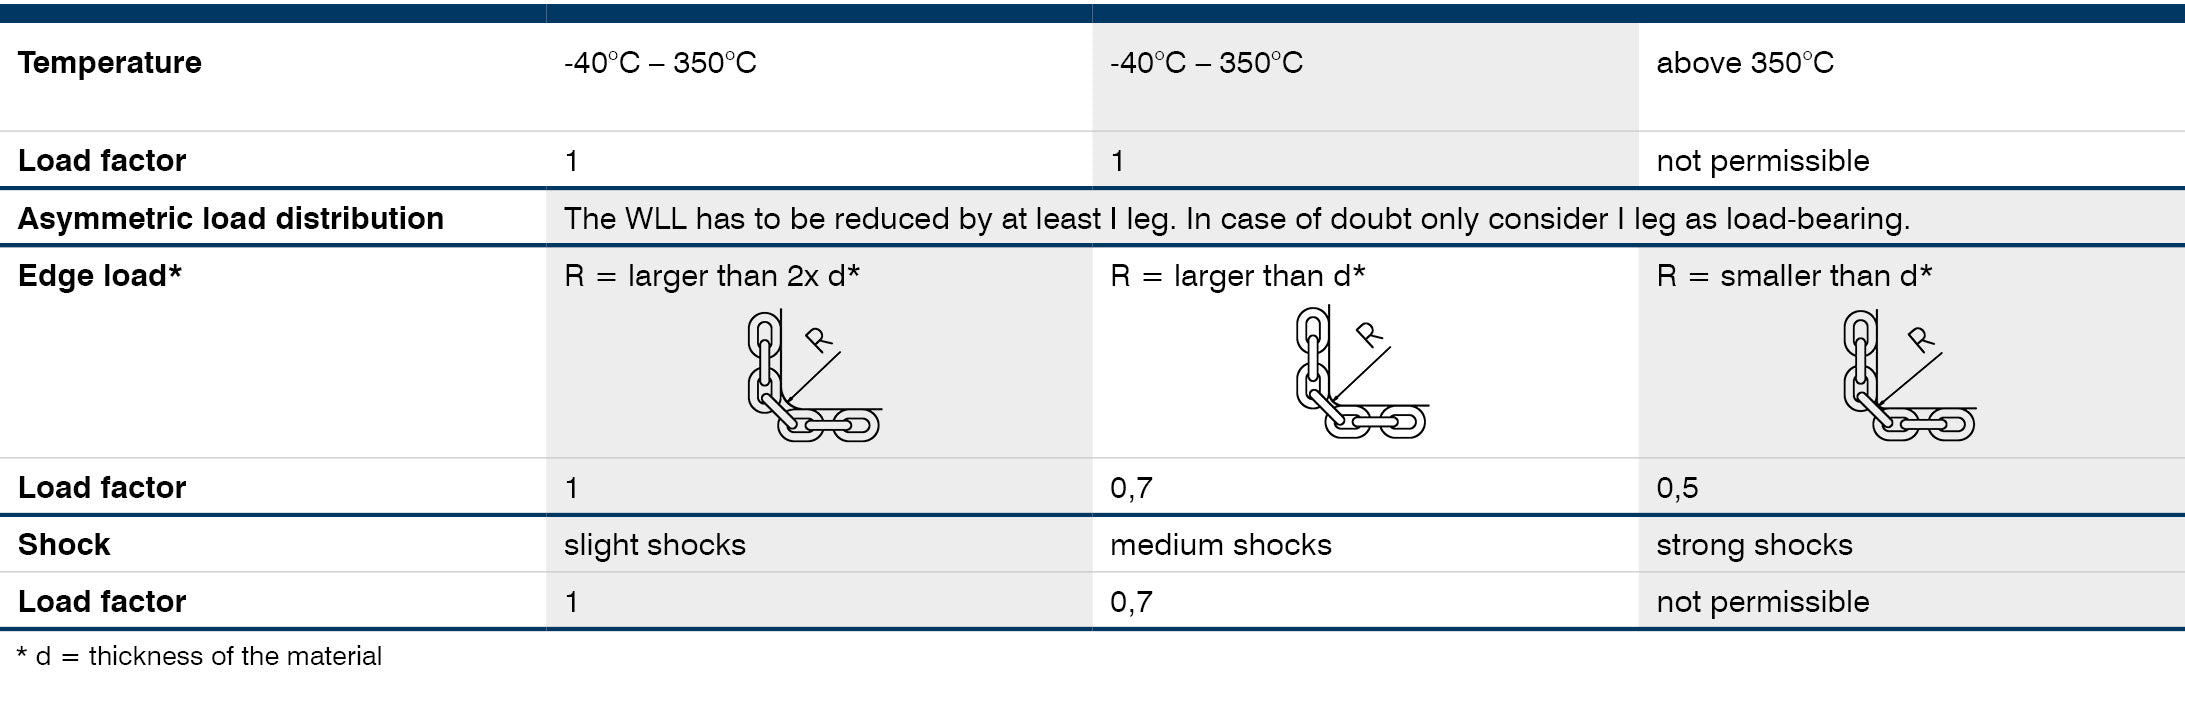 Magnificent Wire Capacity Chart Ideas materials used in electrical ...